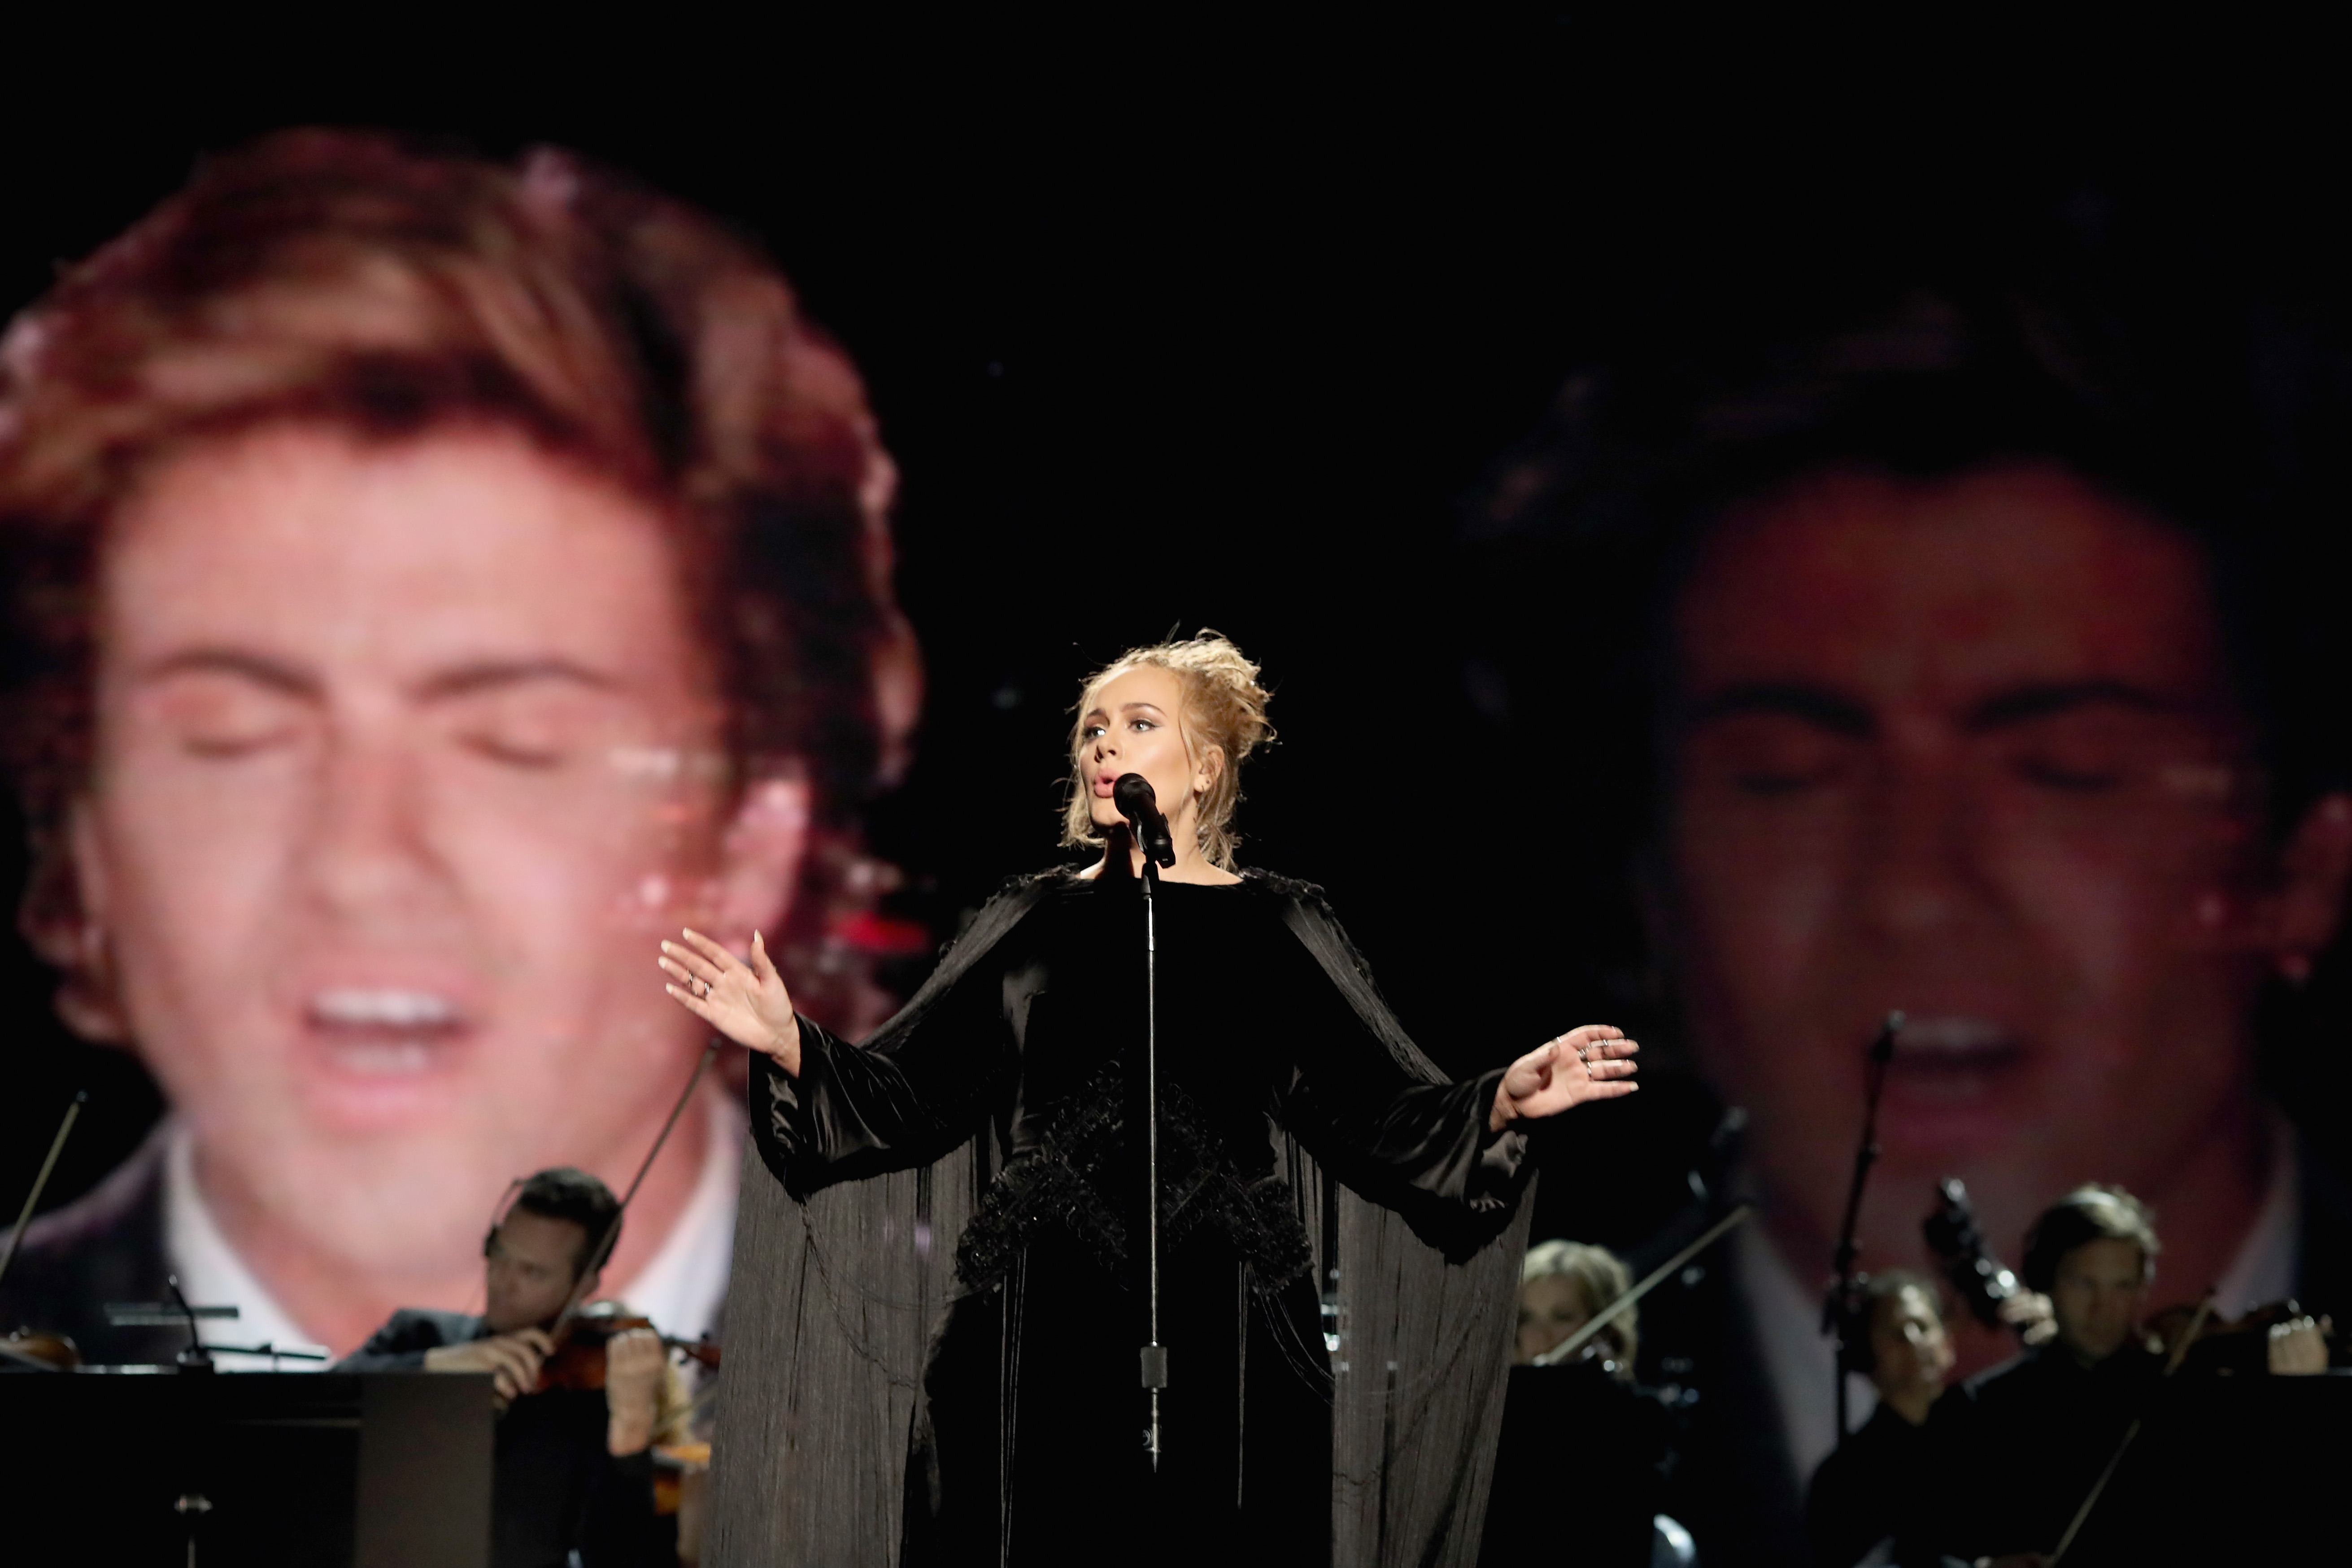 Singer Adele performs during The 59th GRAMMY Awards at STAPLES Center on February 12, 2017 in Los Angeles.  (Photo by Christopher Polk/Getty Images for NARAS)